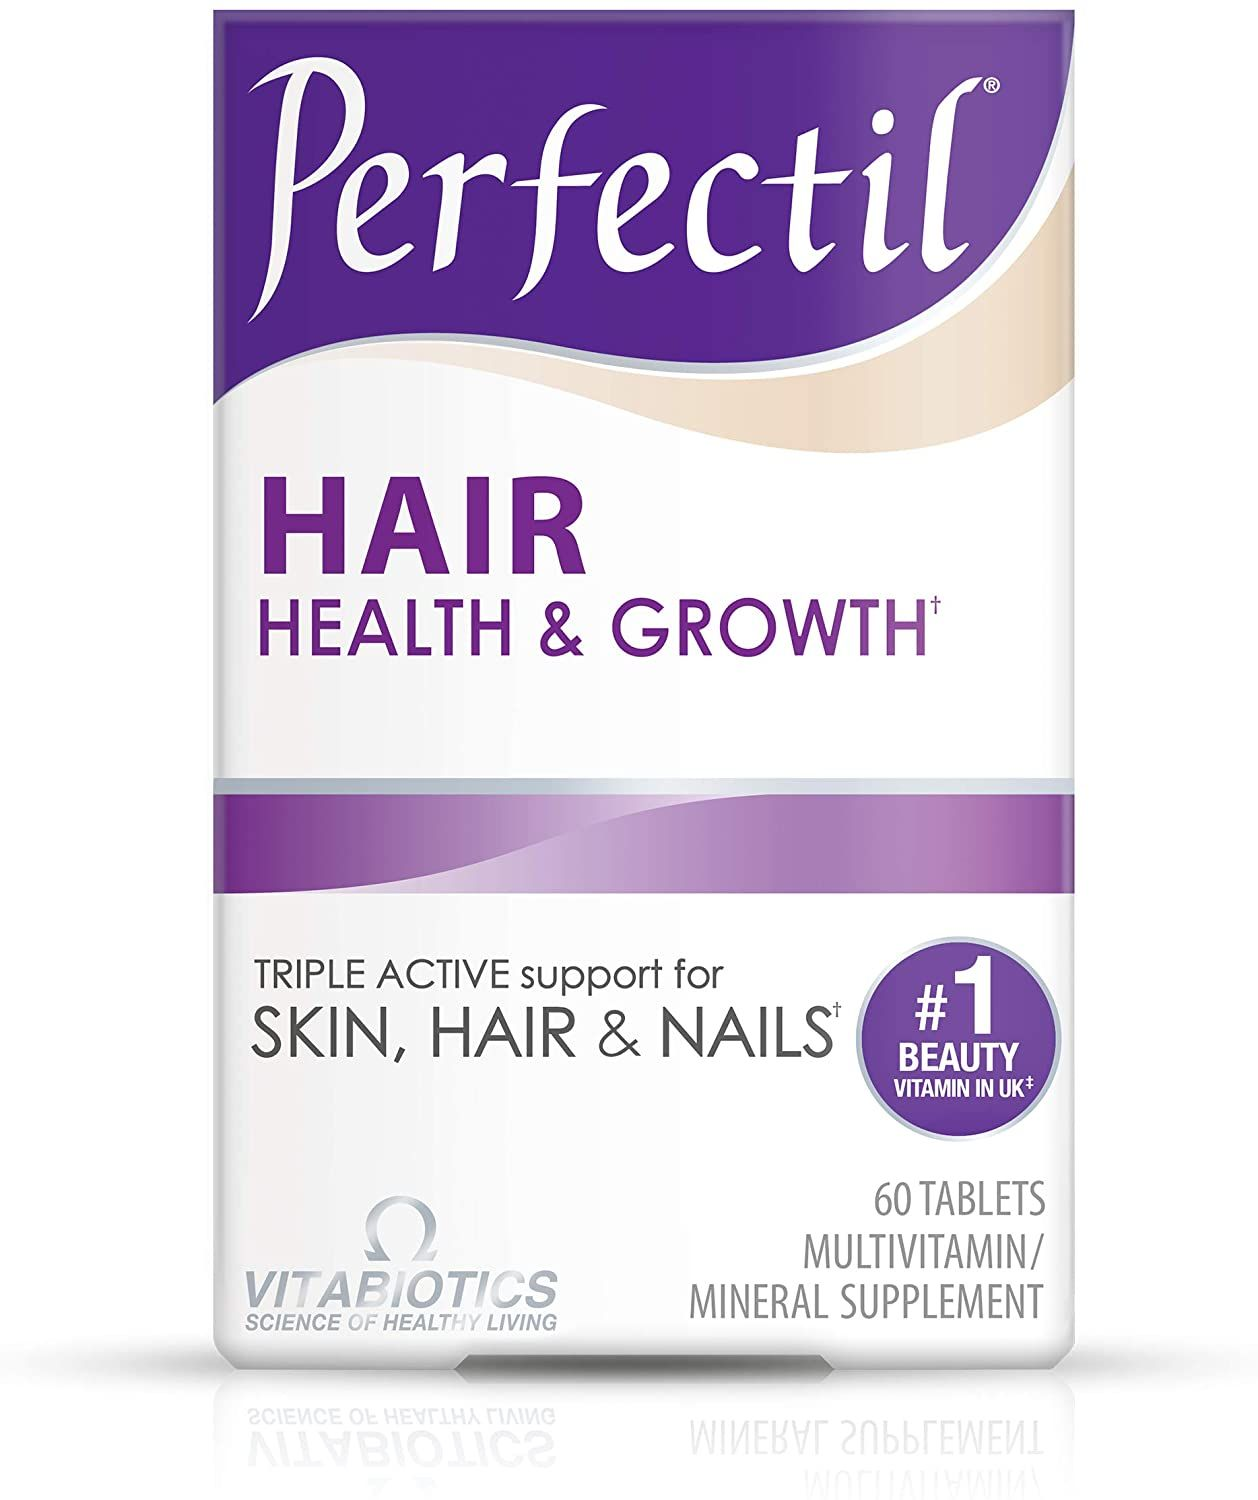 Vitabiotics Perfectil Plus Hair 60 Tablets Health And Personal Care Amazon Affiliate Link Click Image F Beauty Vitamins Hair Health Growth Grow Hair Back